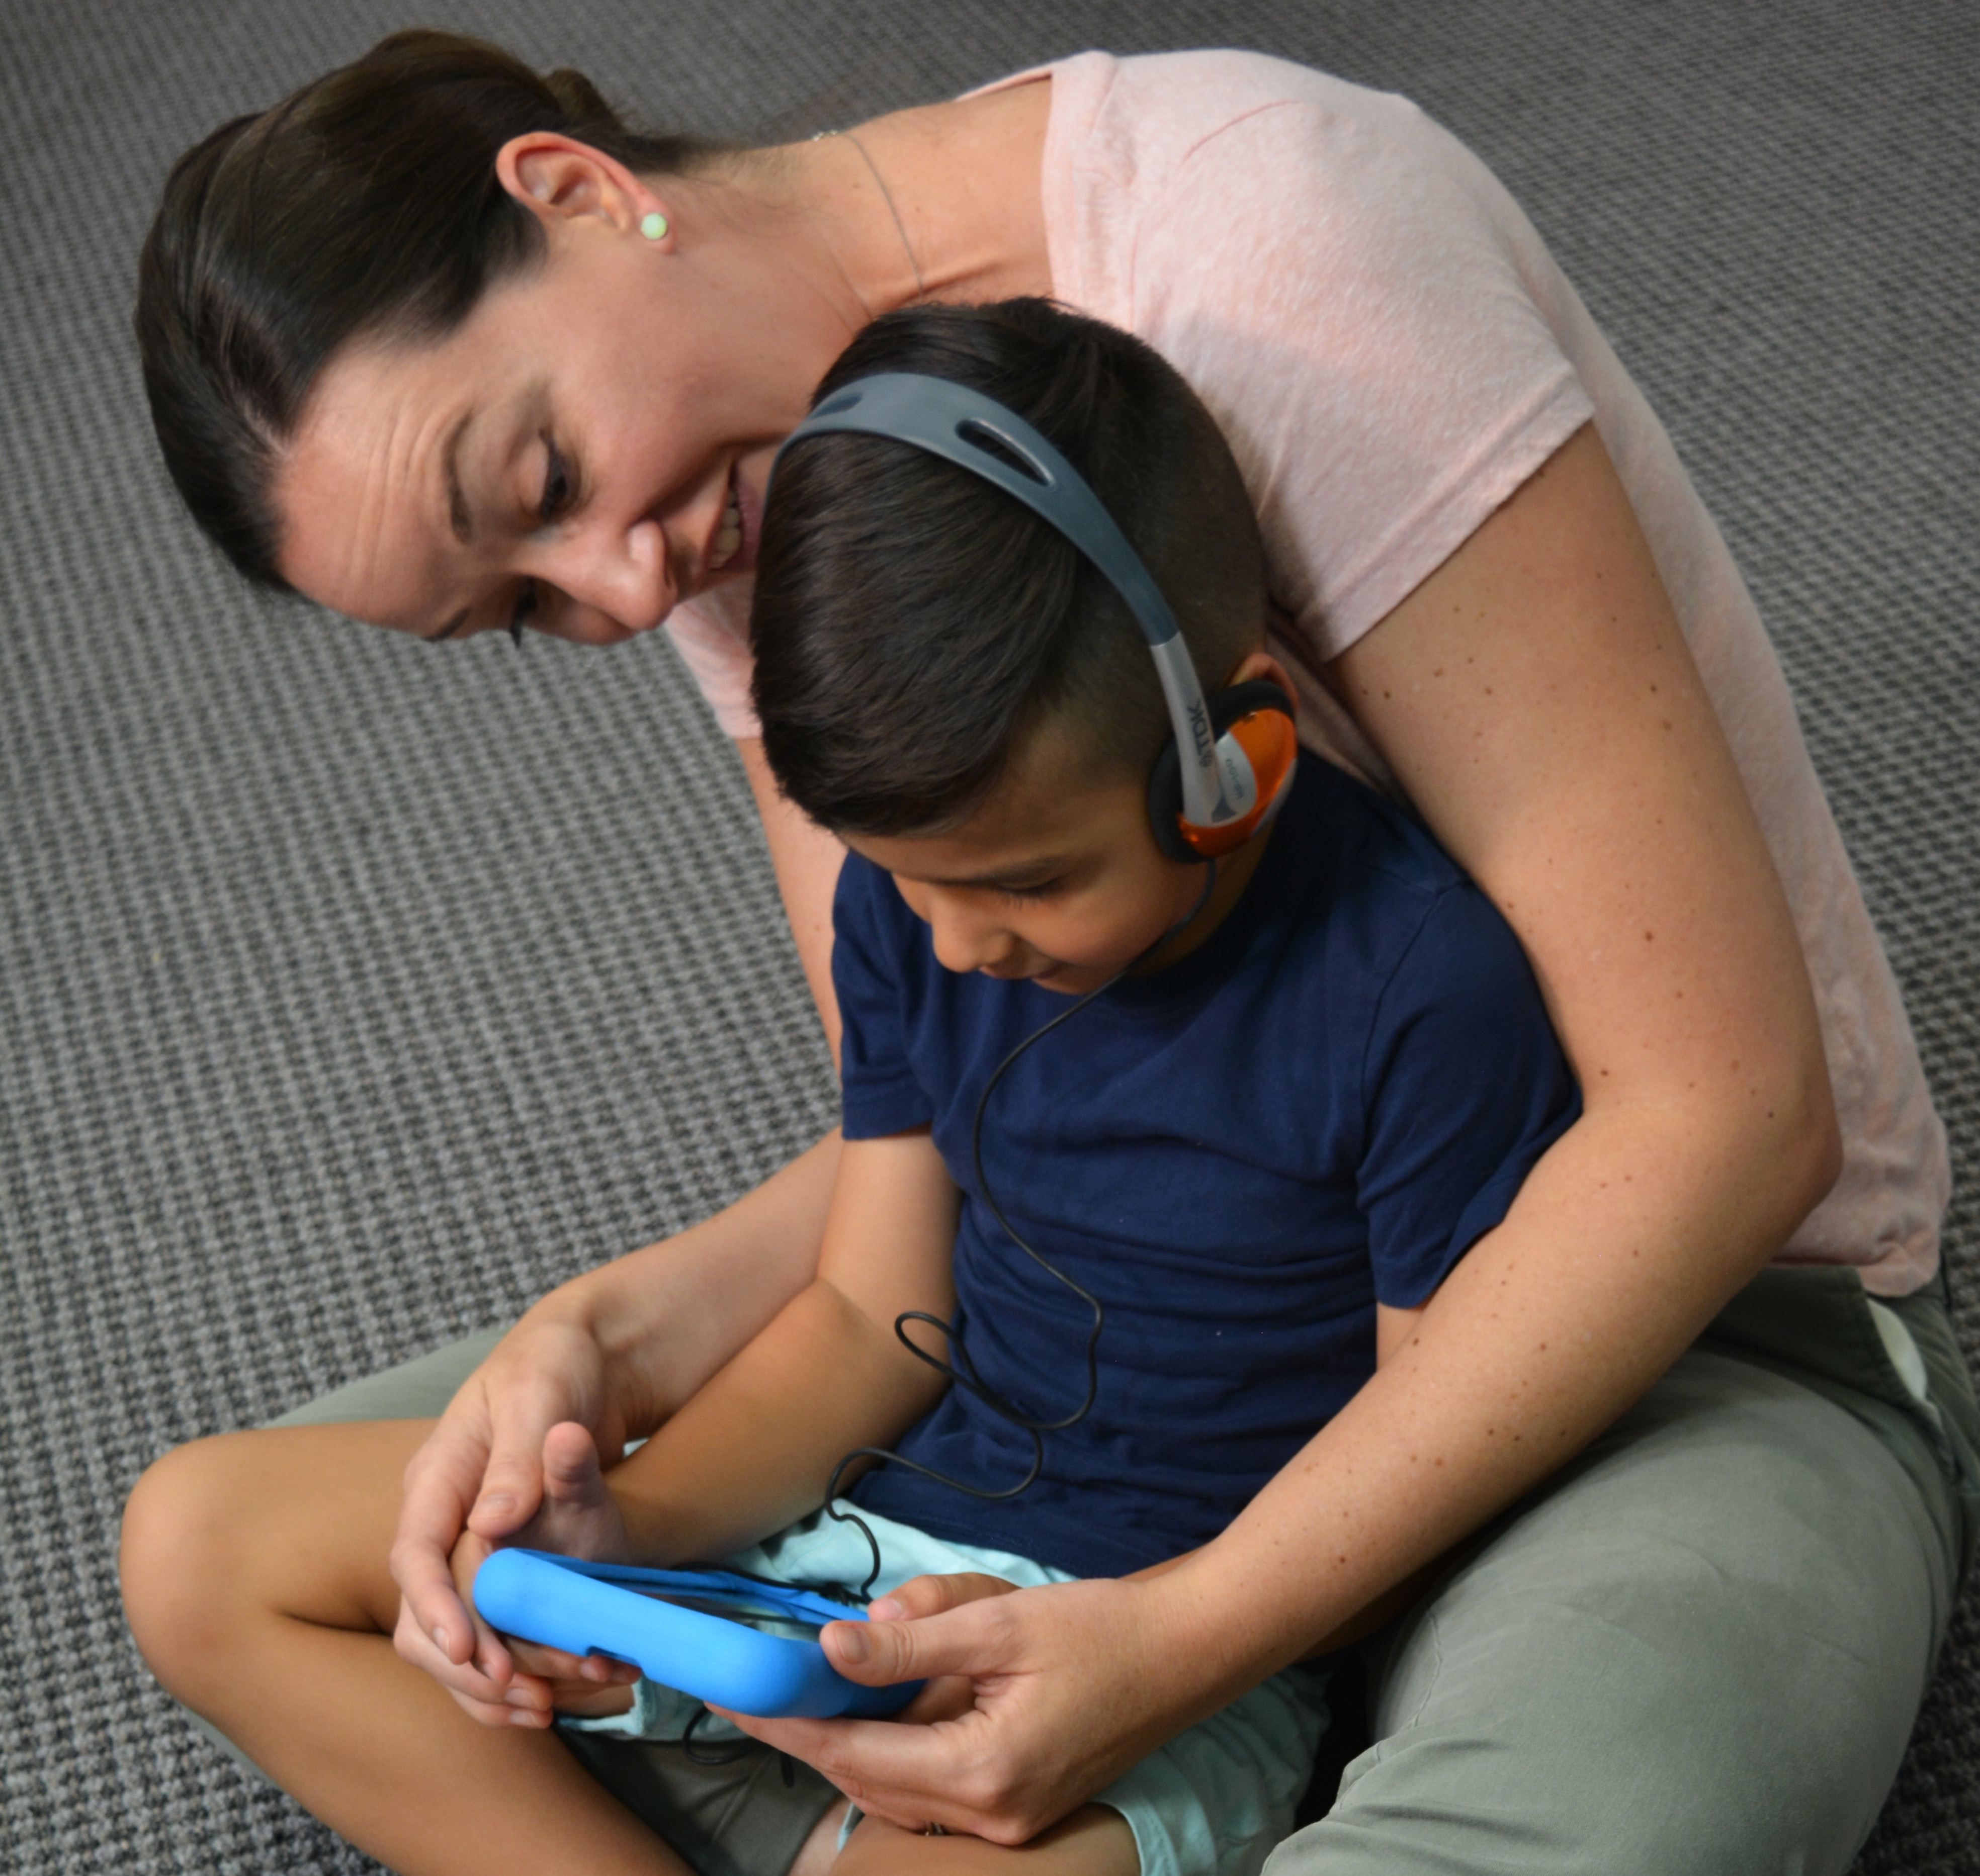 A boy using headphones and a tablet, seated in a woman's lap. She is looking at the tablet screen with him.